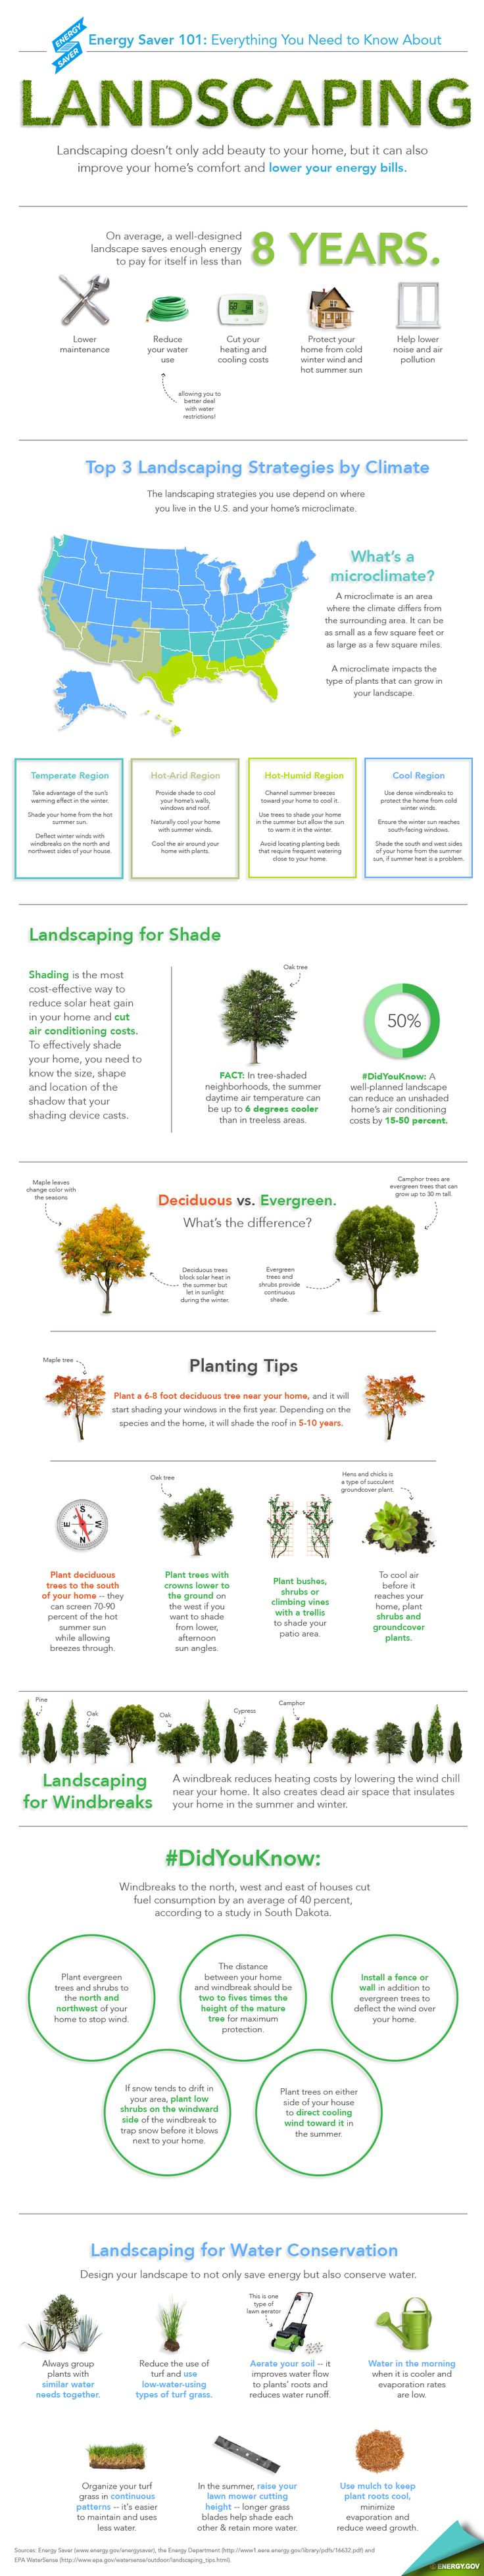 """Our new Energy Saver 101 infographic highlights everything you need to know to landscape for energy savings. Download a <a href=""""/node/898361"""">high resolution version</a> of the infographic or individual sections. 